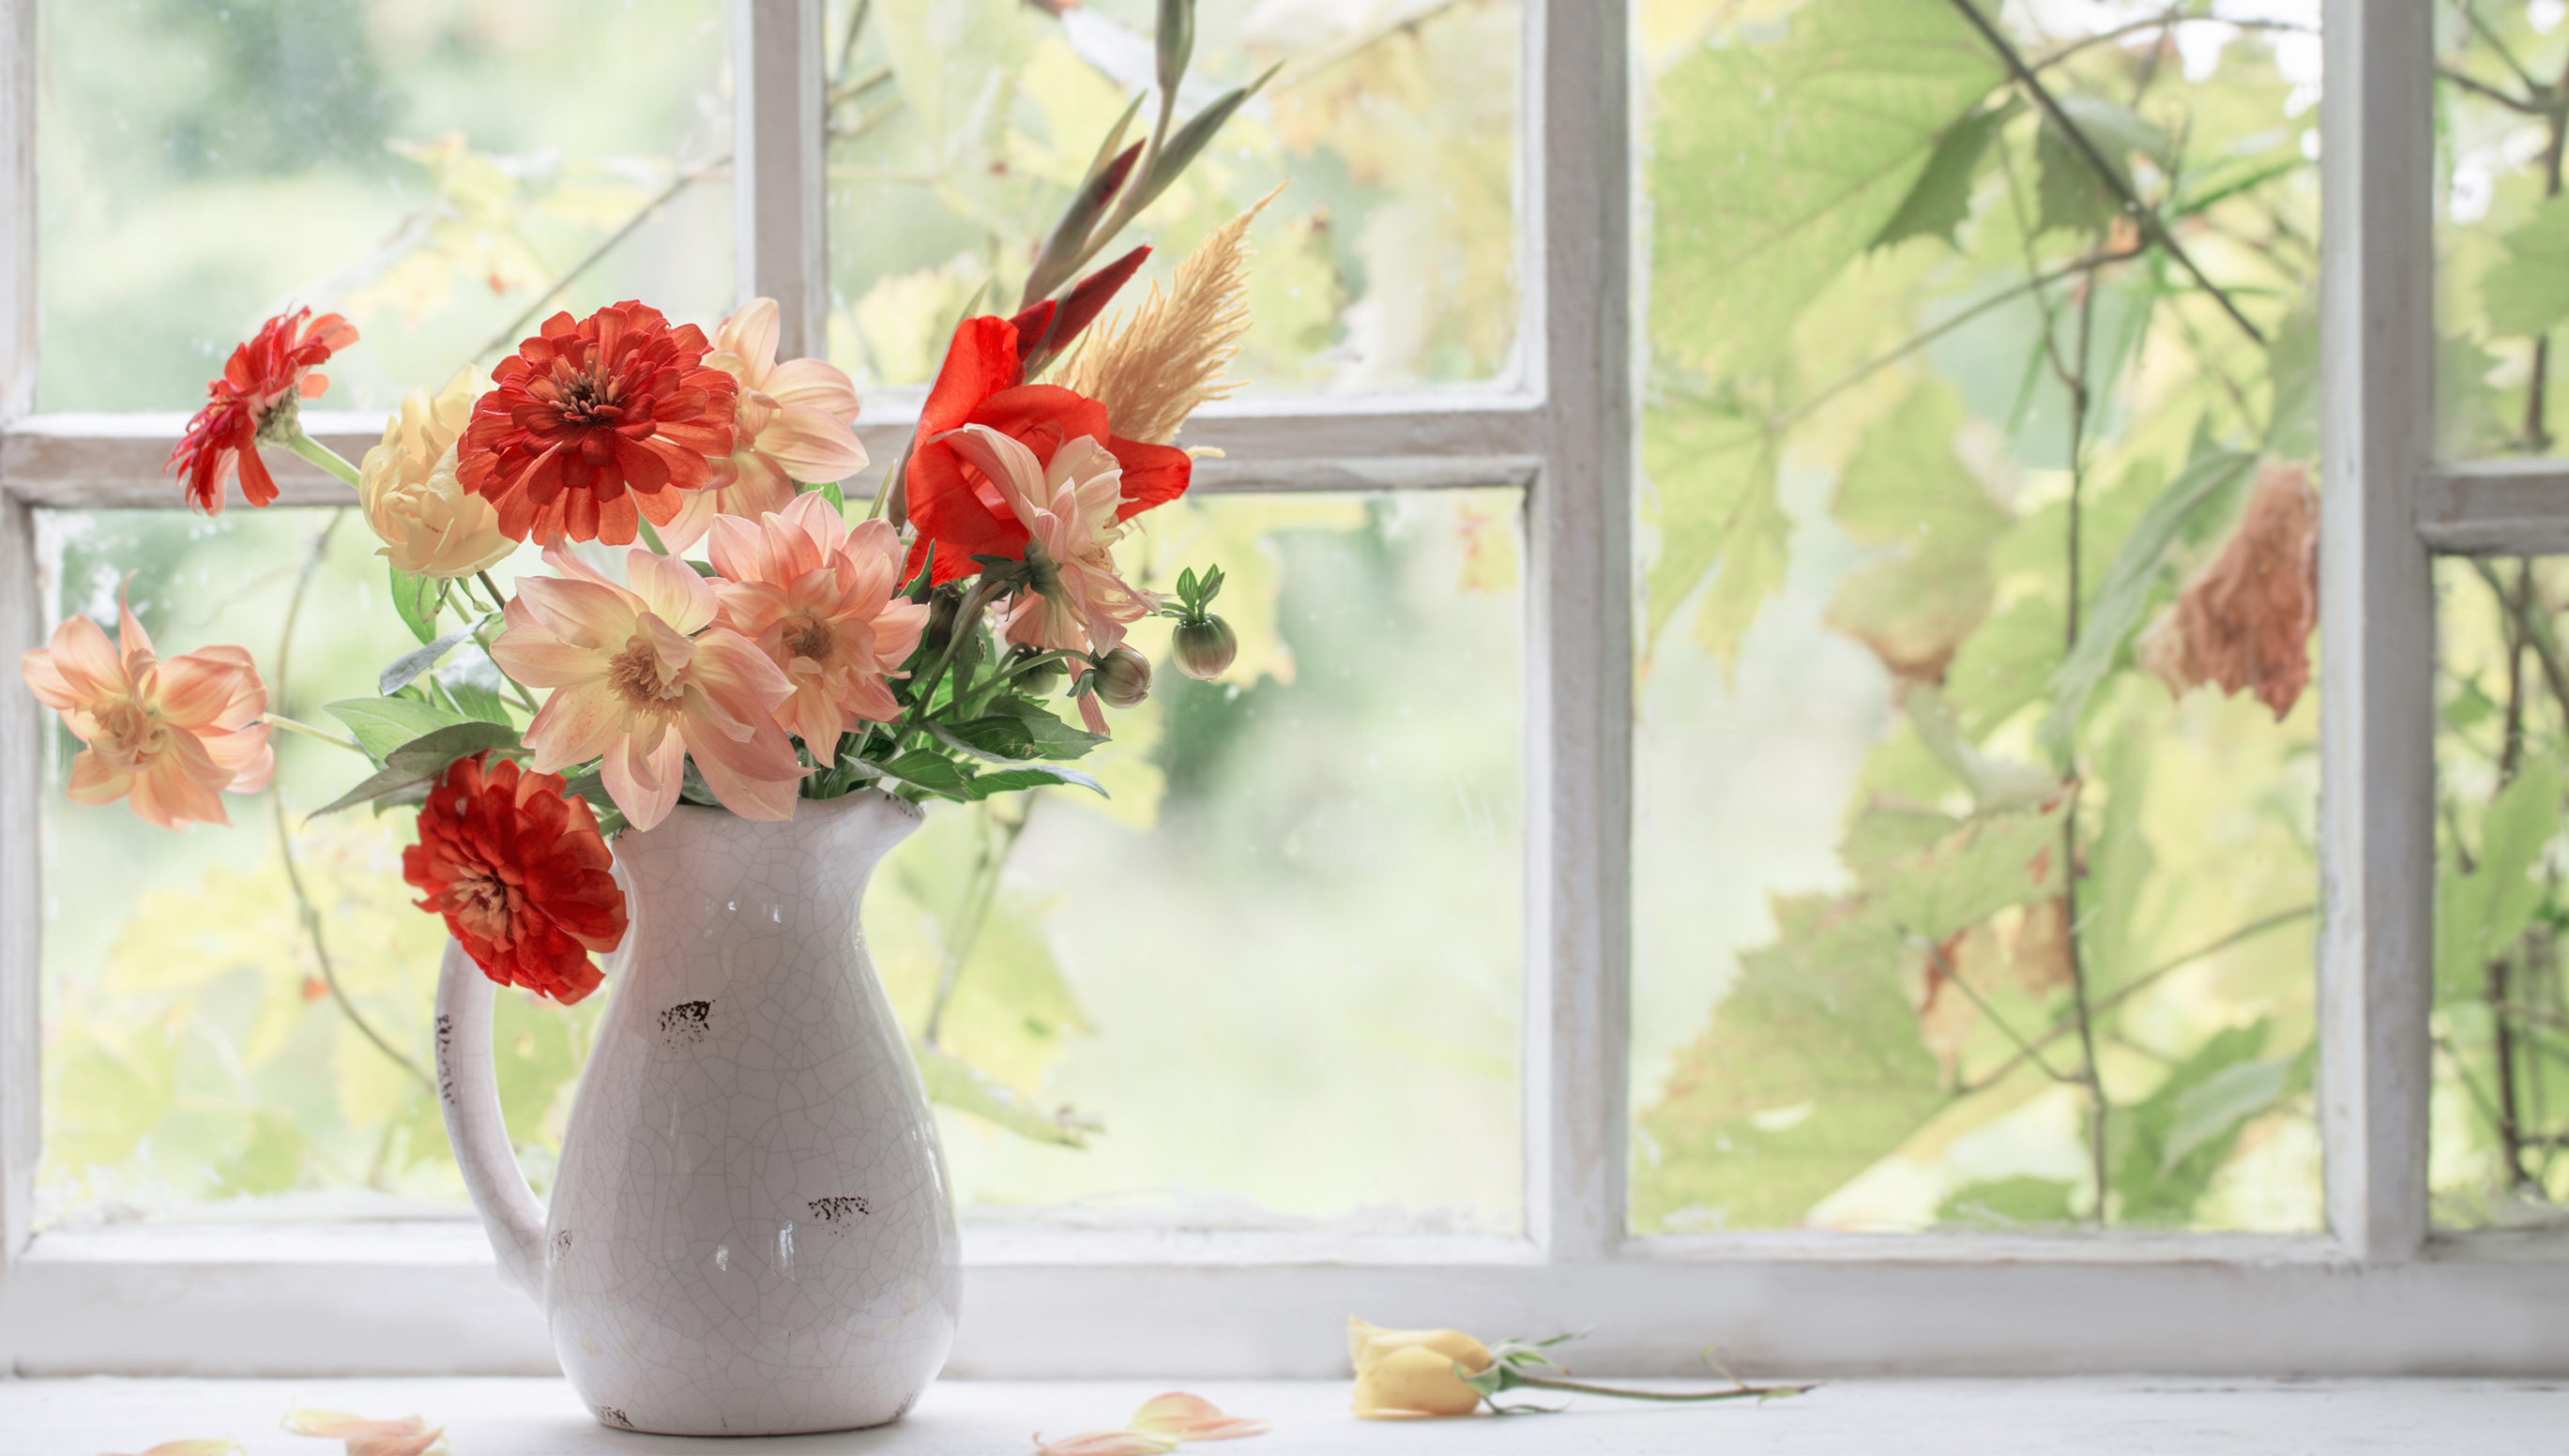 HHow to Choose the Right Flowers as Your Home Decor